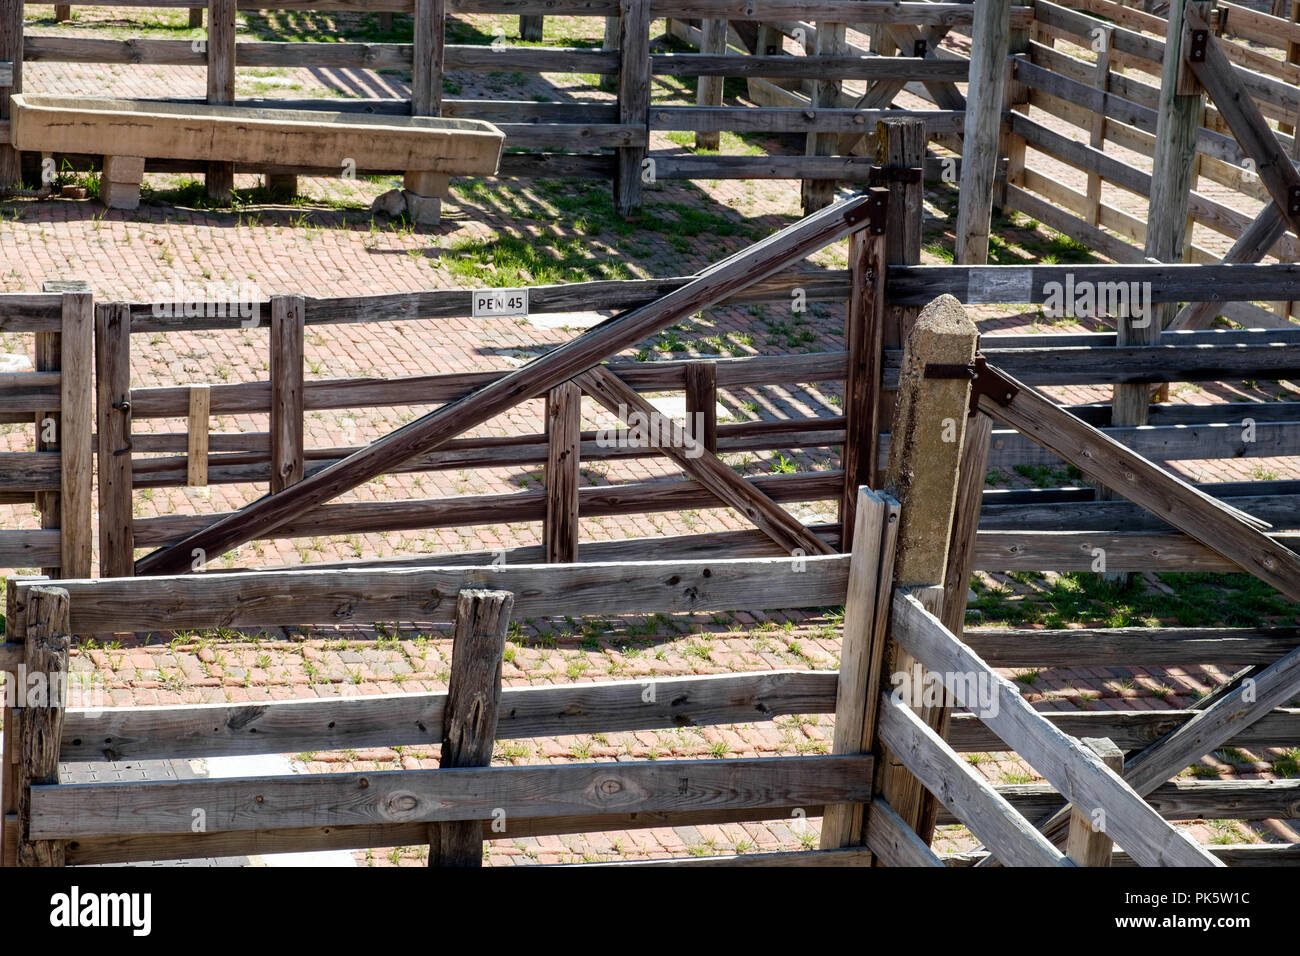 Empty Old Wooden Cattle Pens In Fort Worth Stockyards